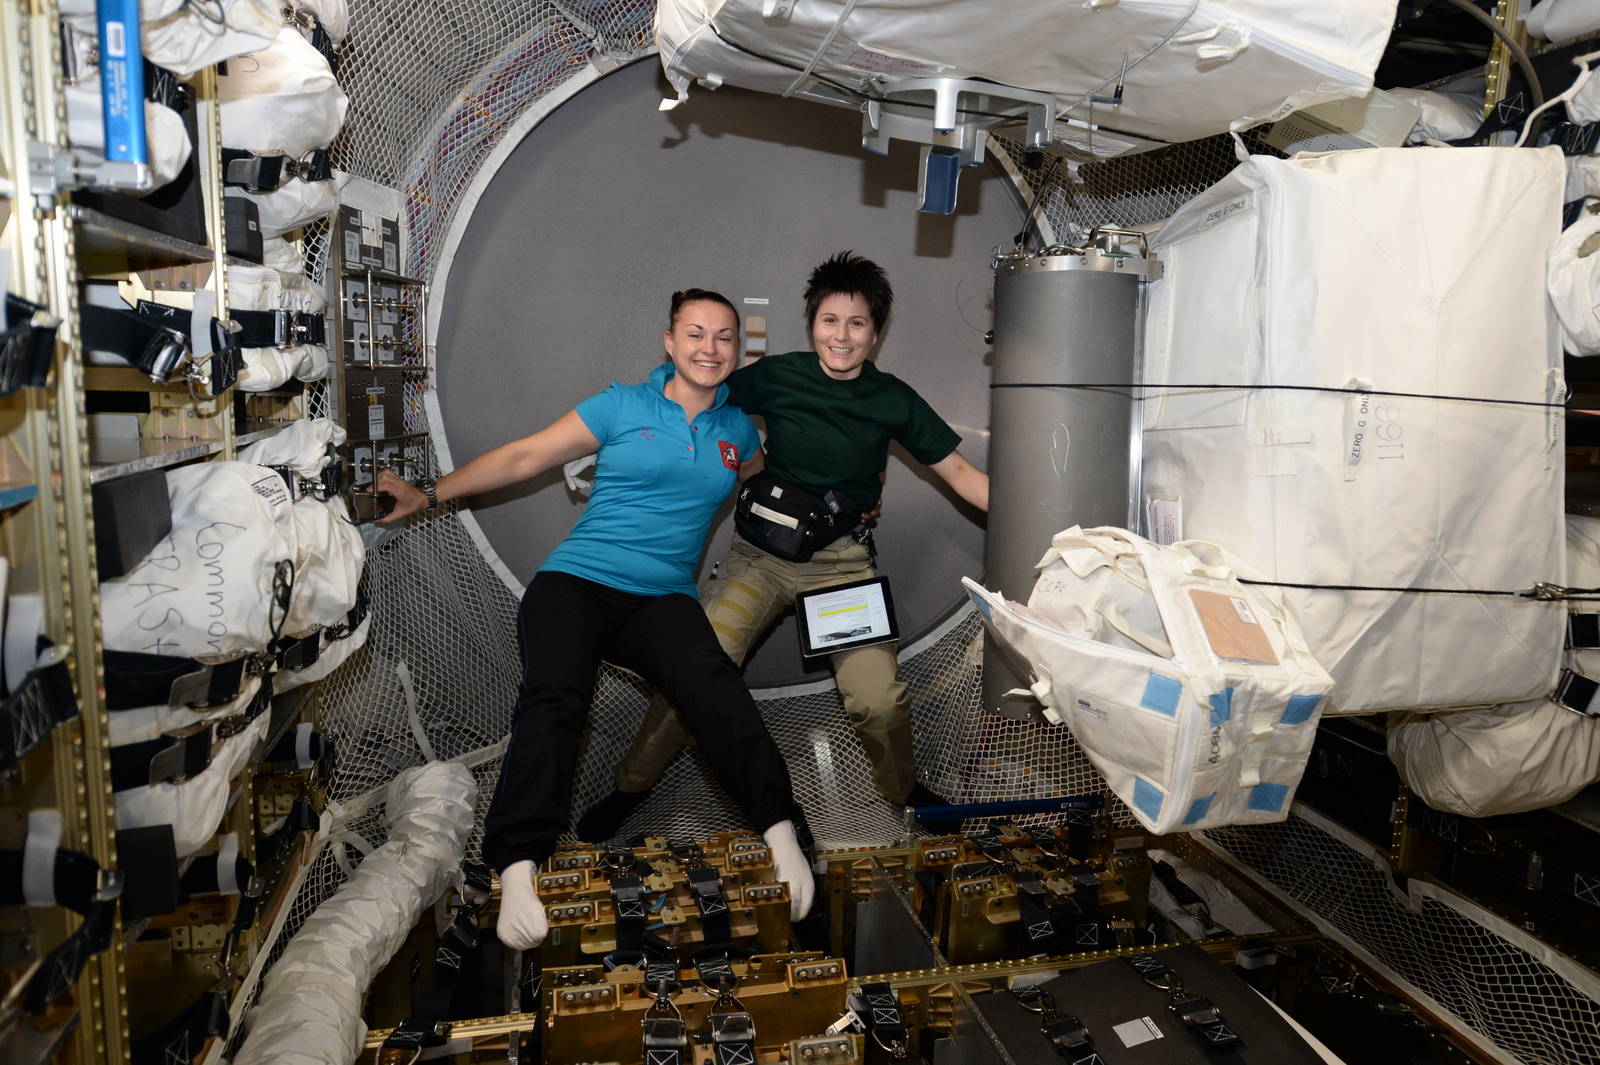 NASA TV to Air Interactive Women in STEM Event